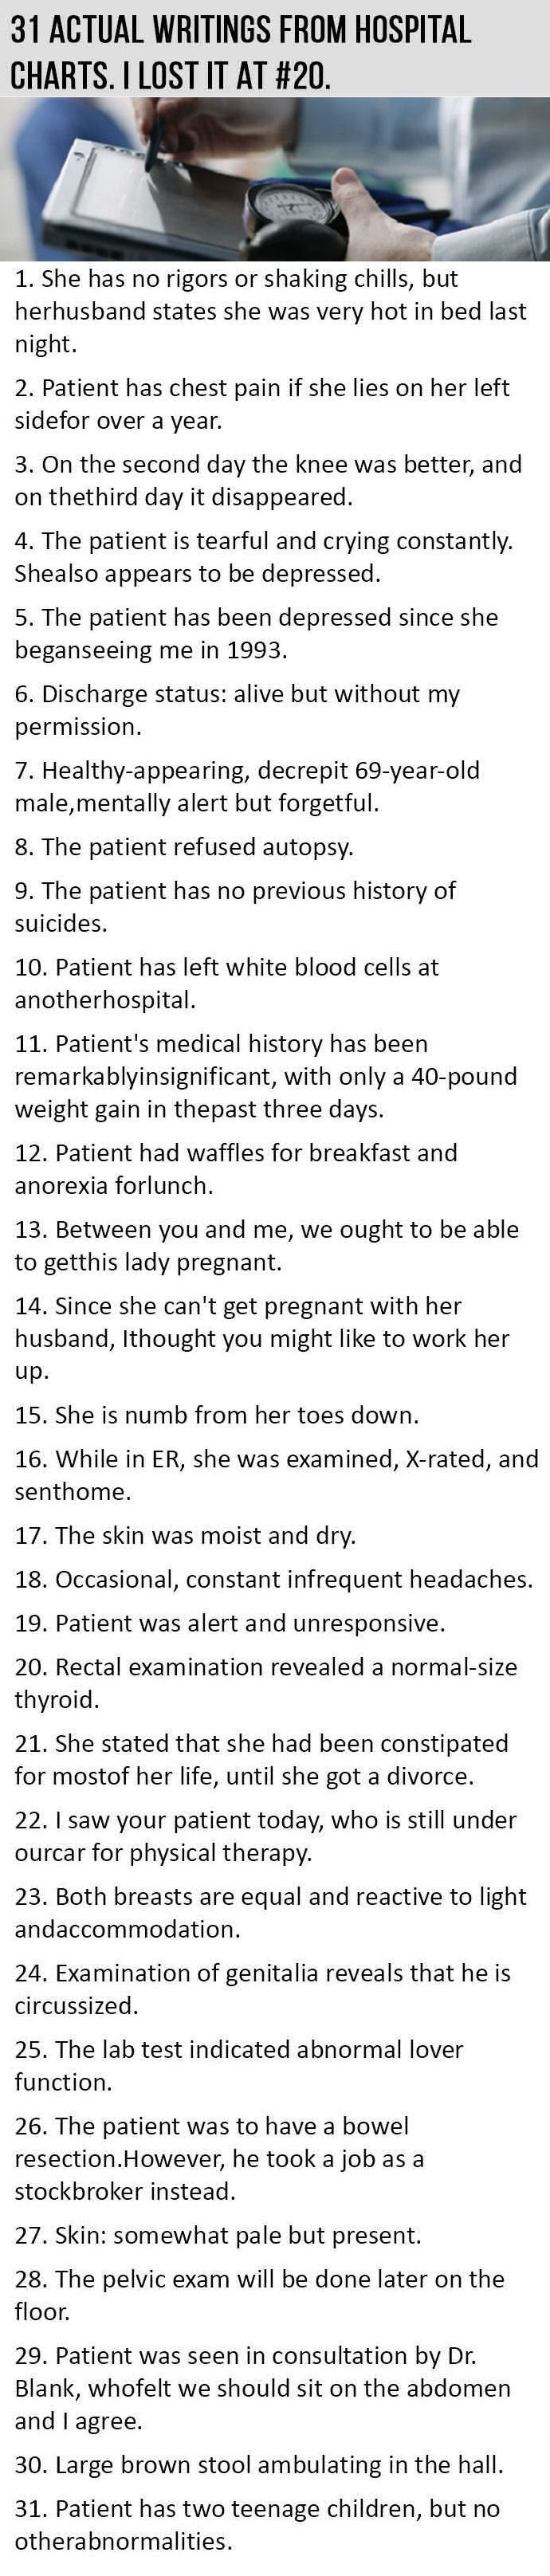 31 Actual Writings From Hospital Charts funny jokes lol funny quote ...